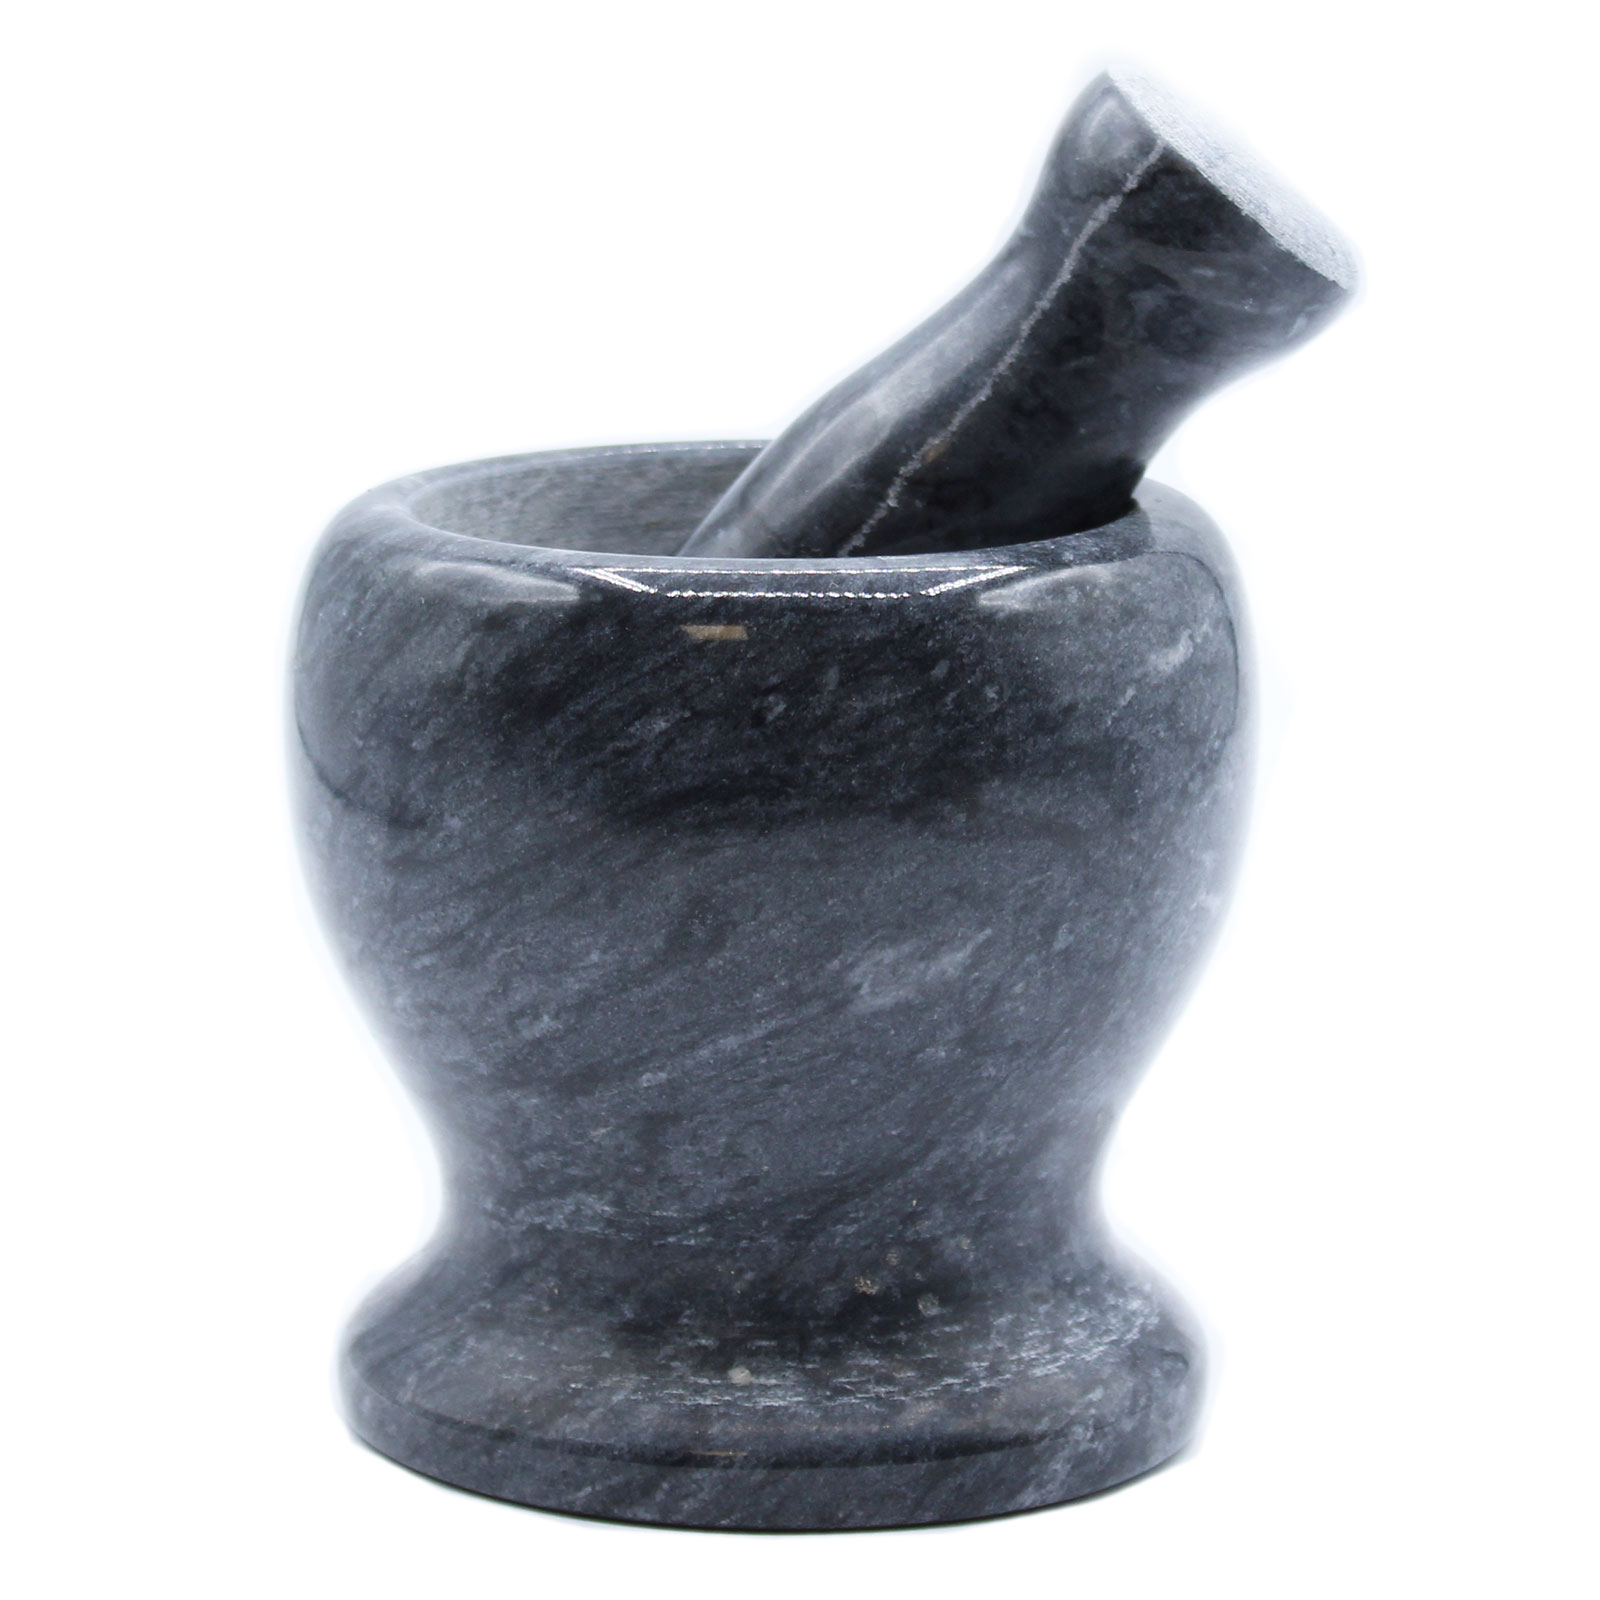 Large Black Marble Pestle   Mortar 11x10cm